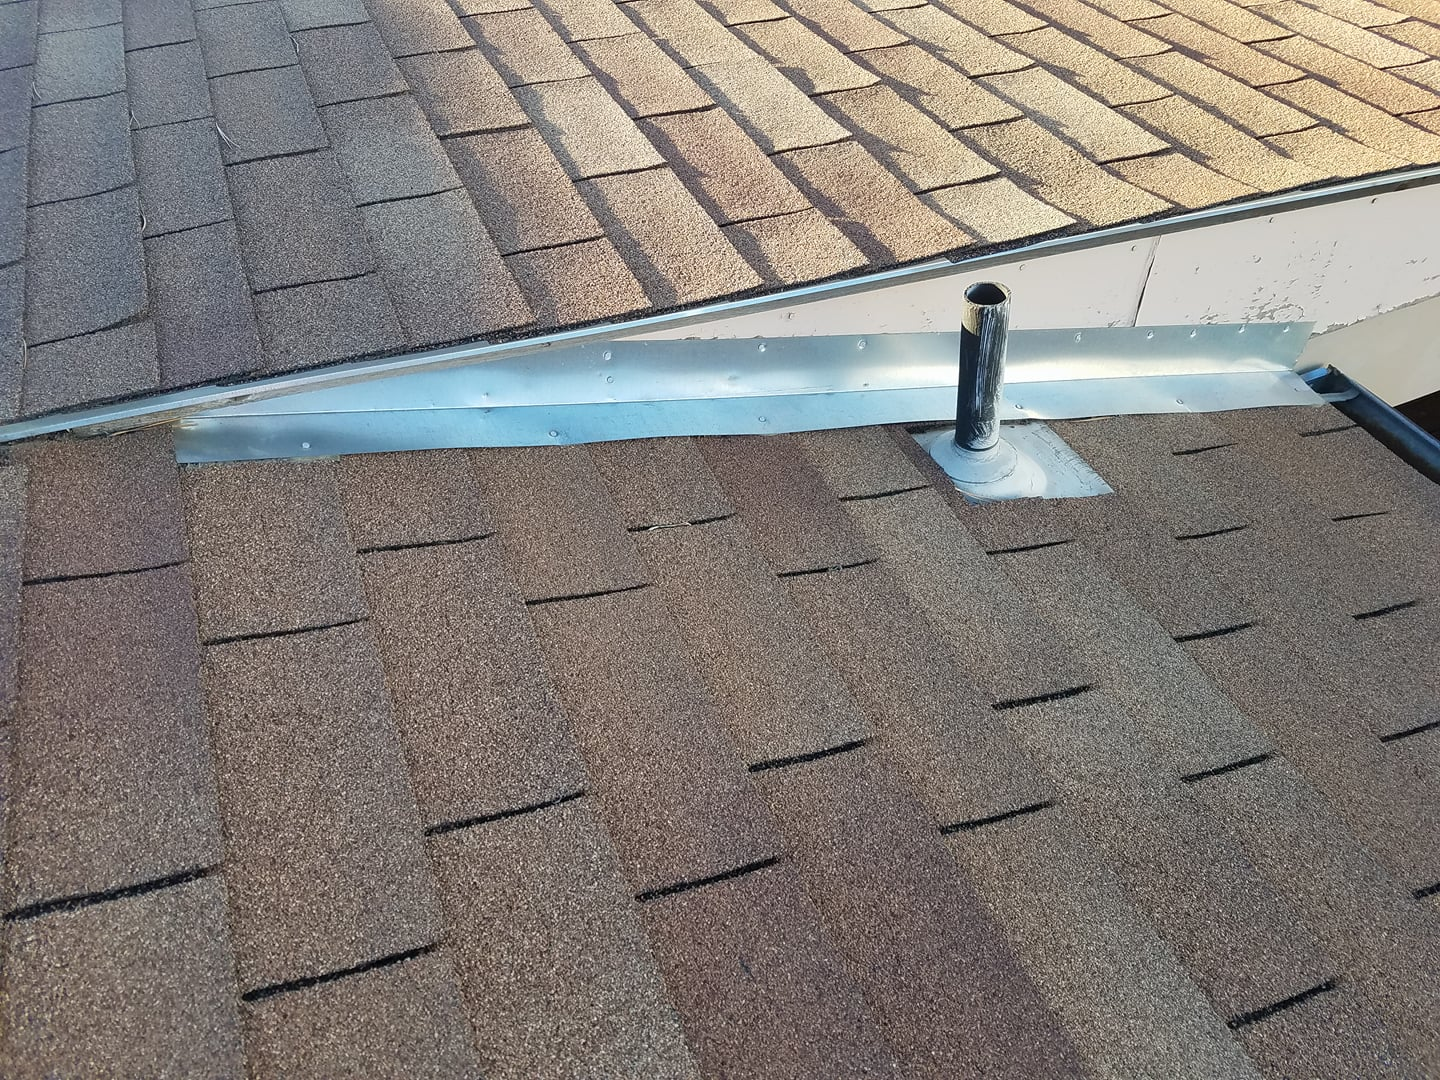 There are way too many issues with this sidewall flashing as they attempt to stop leaking and water damaged. This continuous sidewall flashing is serving absolutely no purpose whatsoever.